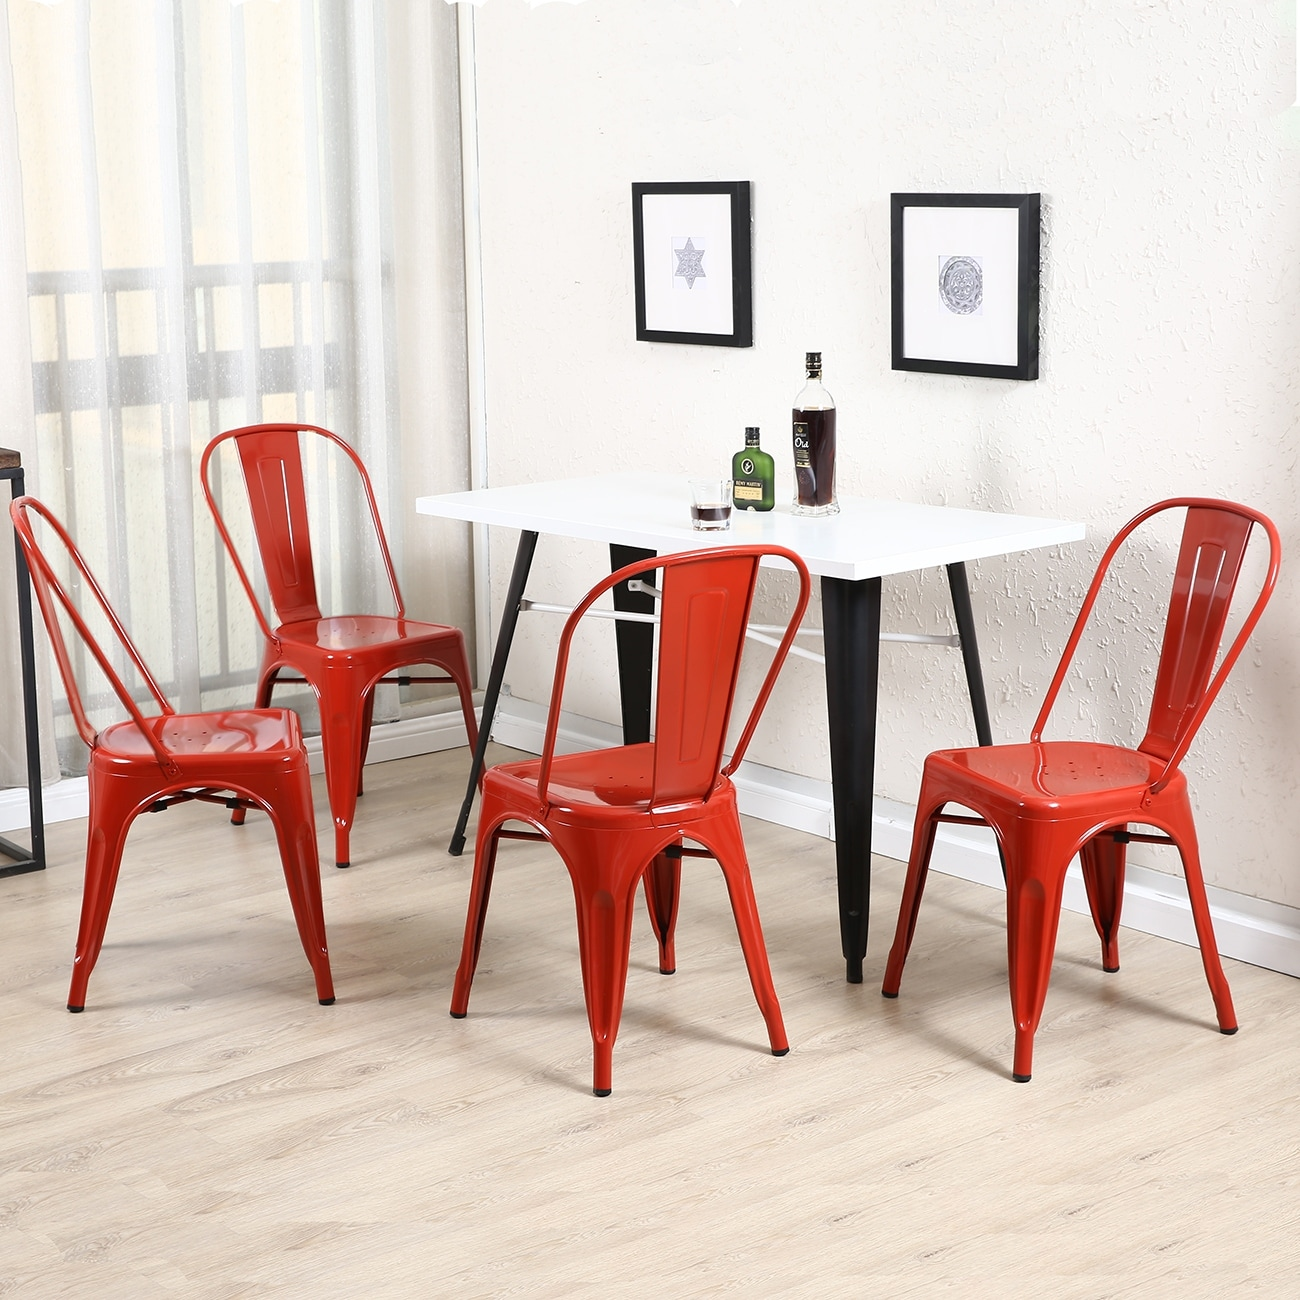 Shop BELLEZE Set Of (4PC) Industrial Restaurant Cafe High Backrest Vintage  Style Dining Chair Stackable Chairs, Red   Free Shipping Today    Overstock.com   ...